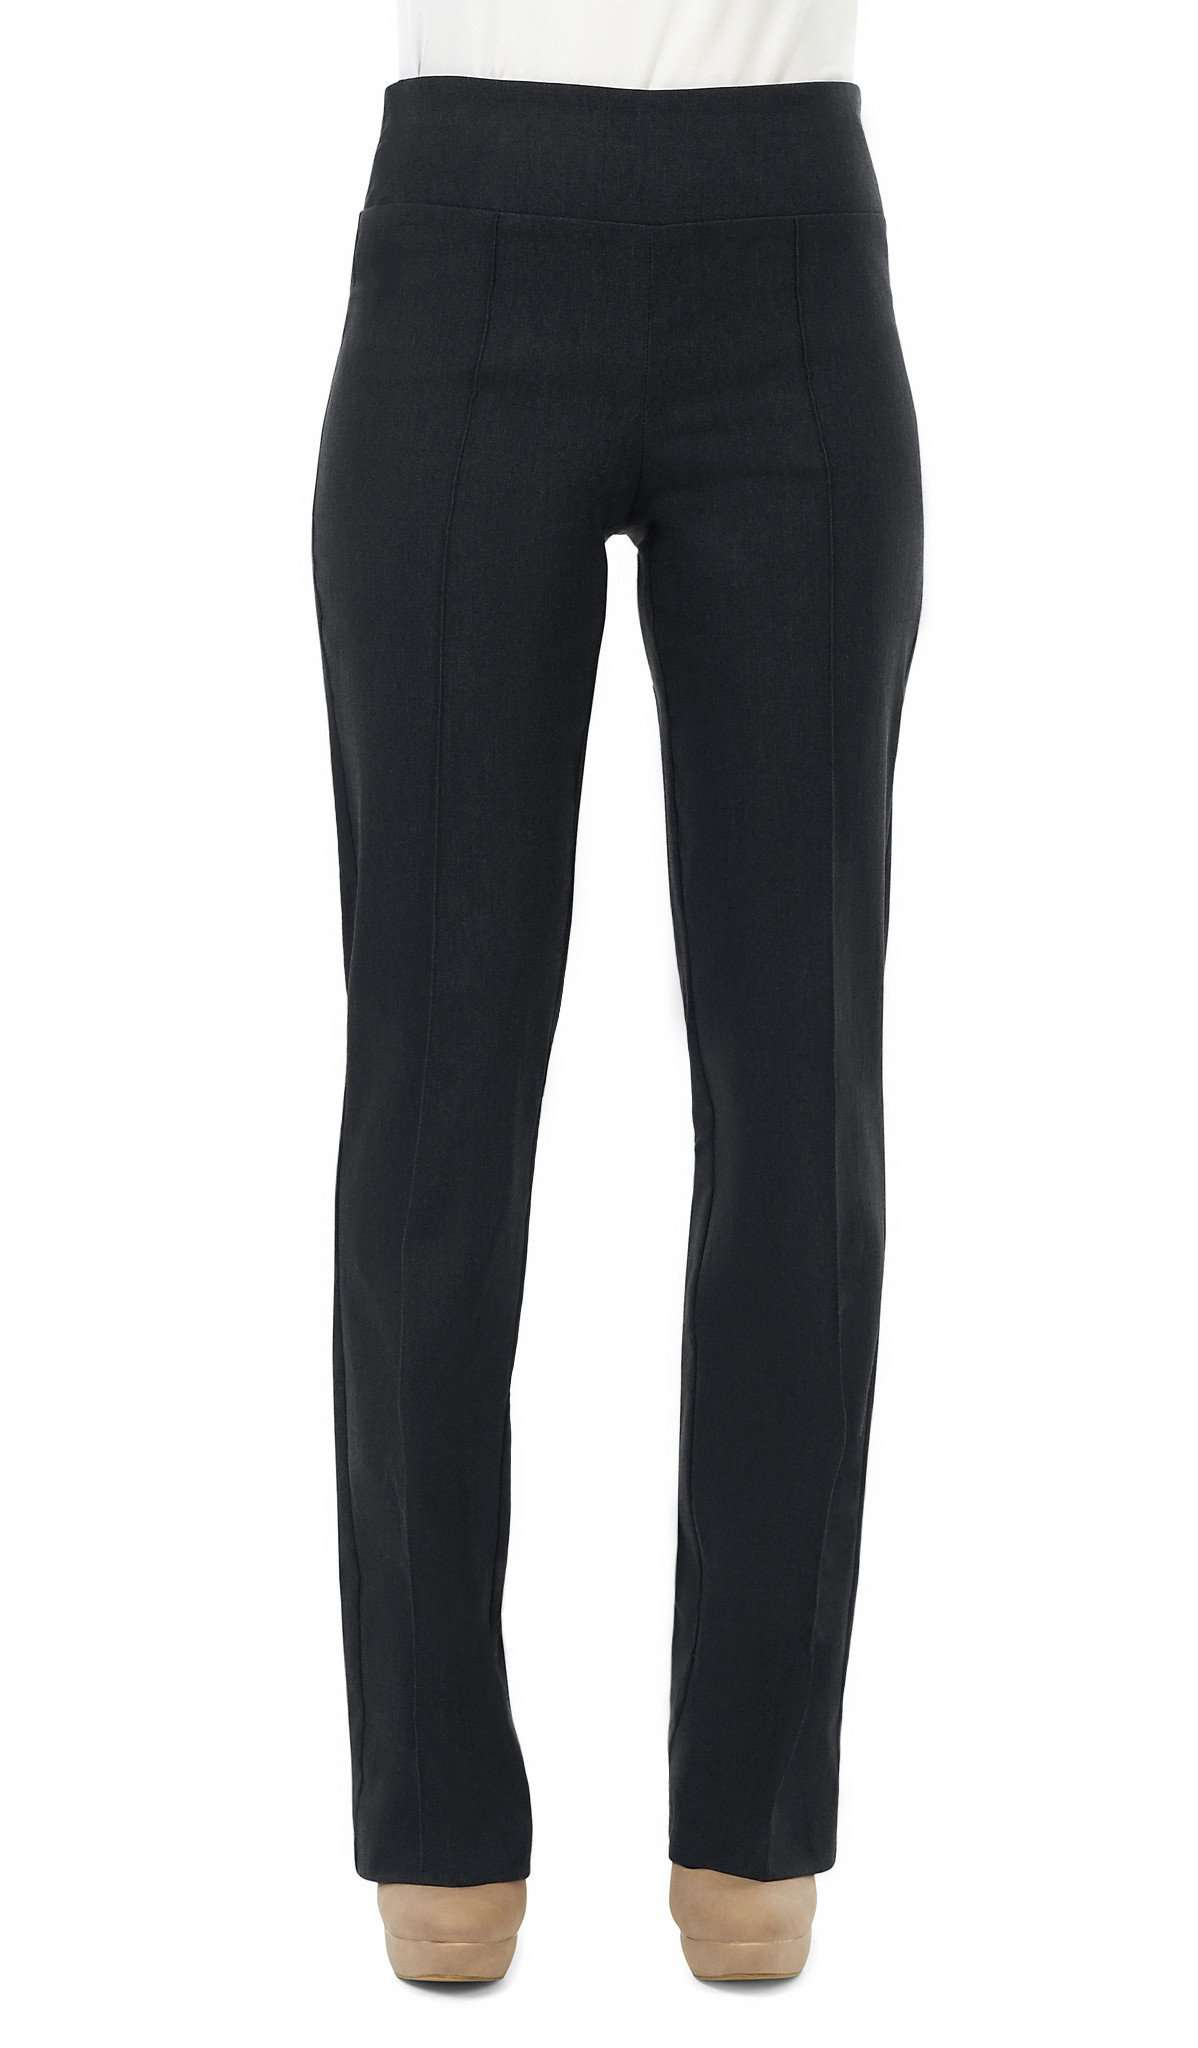 Women's Charcoal Miracle Fit Stretch Pant - Yvonne Marie